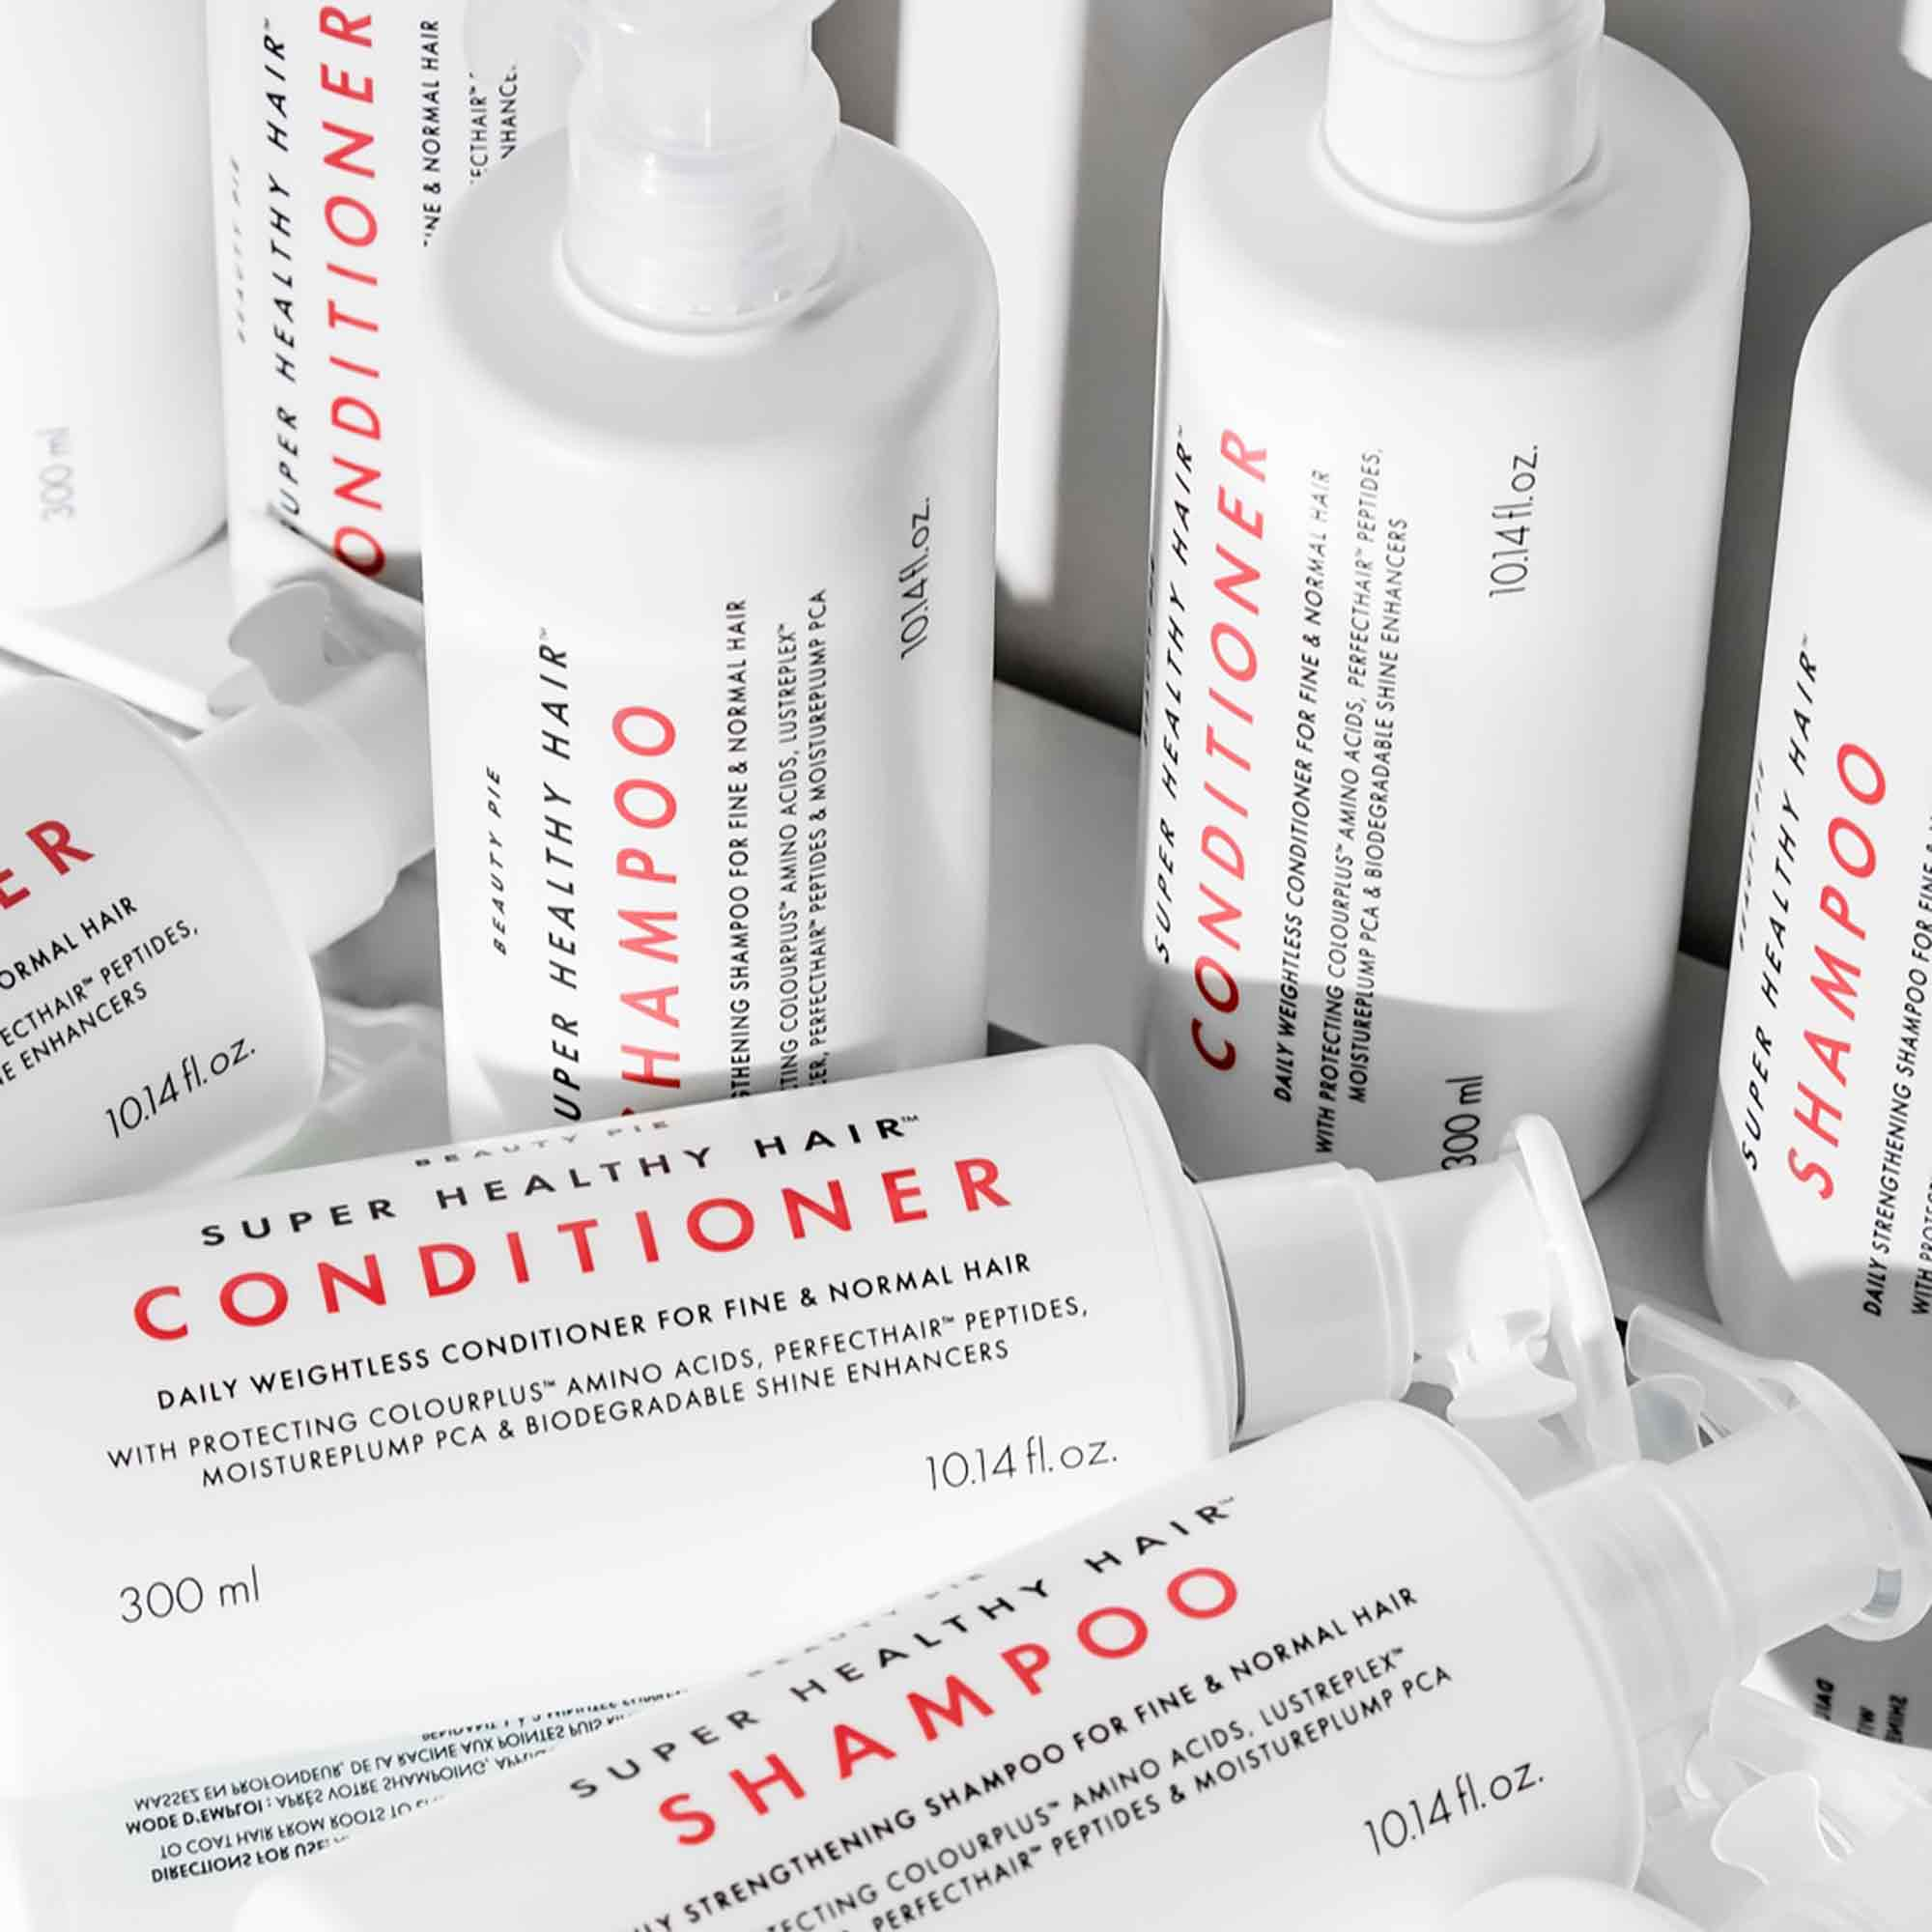 Super Healthy Hair™ Daily Weightless Conditioner by Beauty Pie